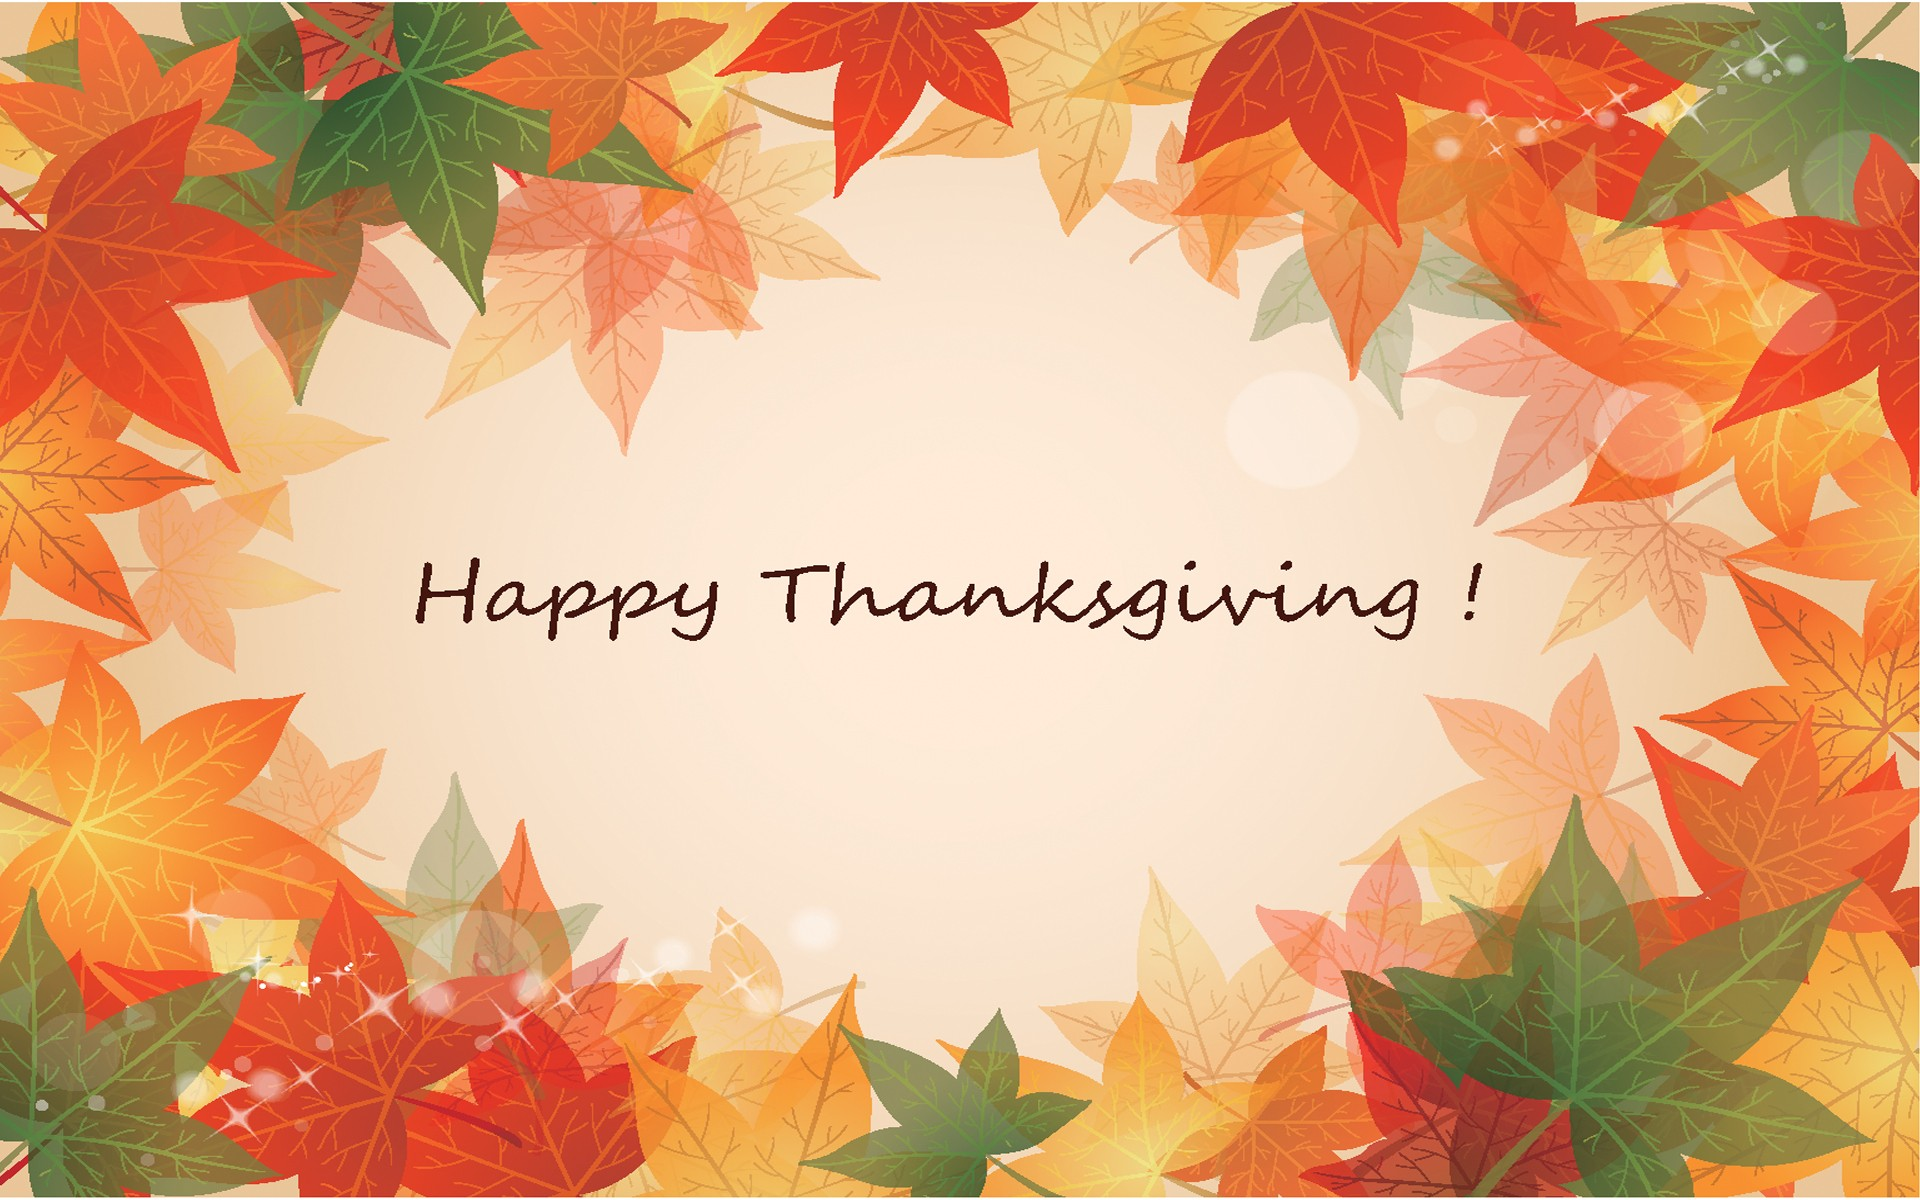 Happy-Thanksgiving-Wishes-Vector-Download